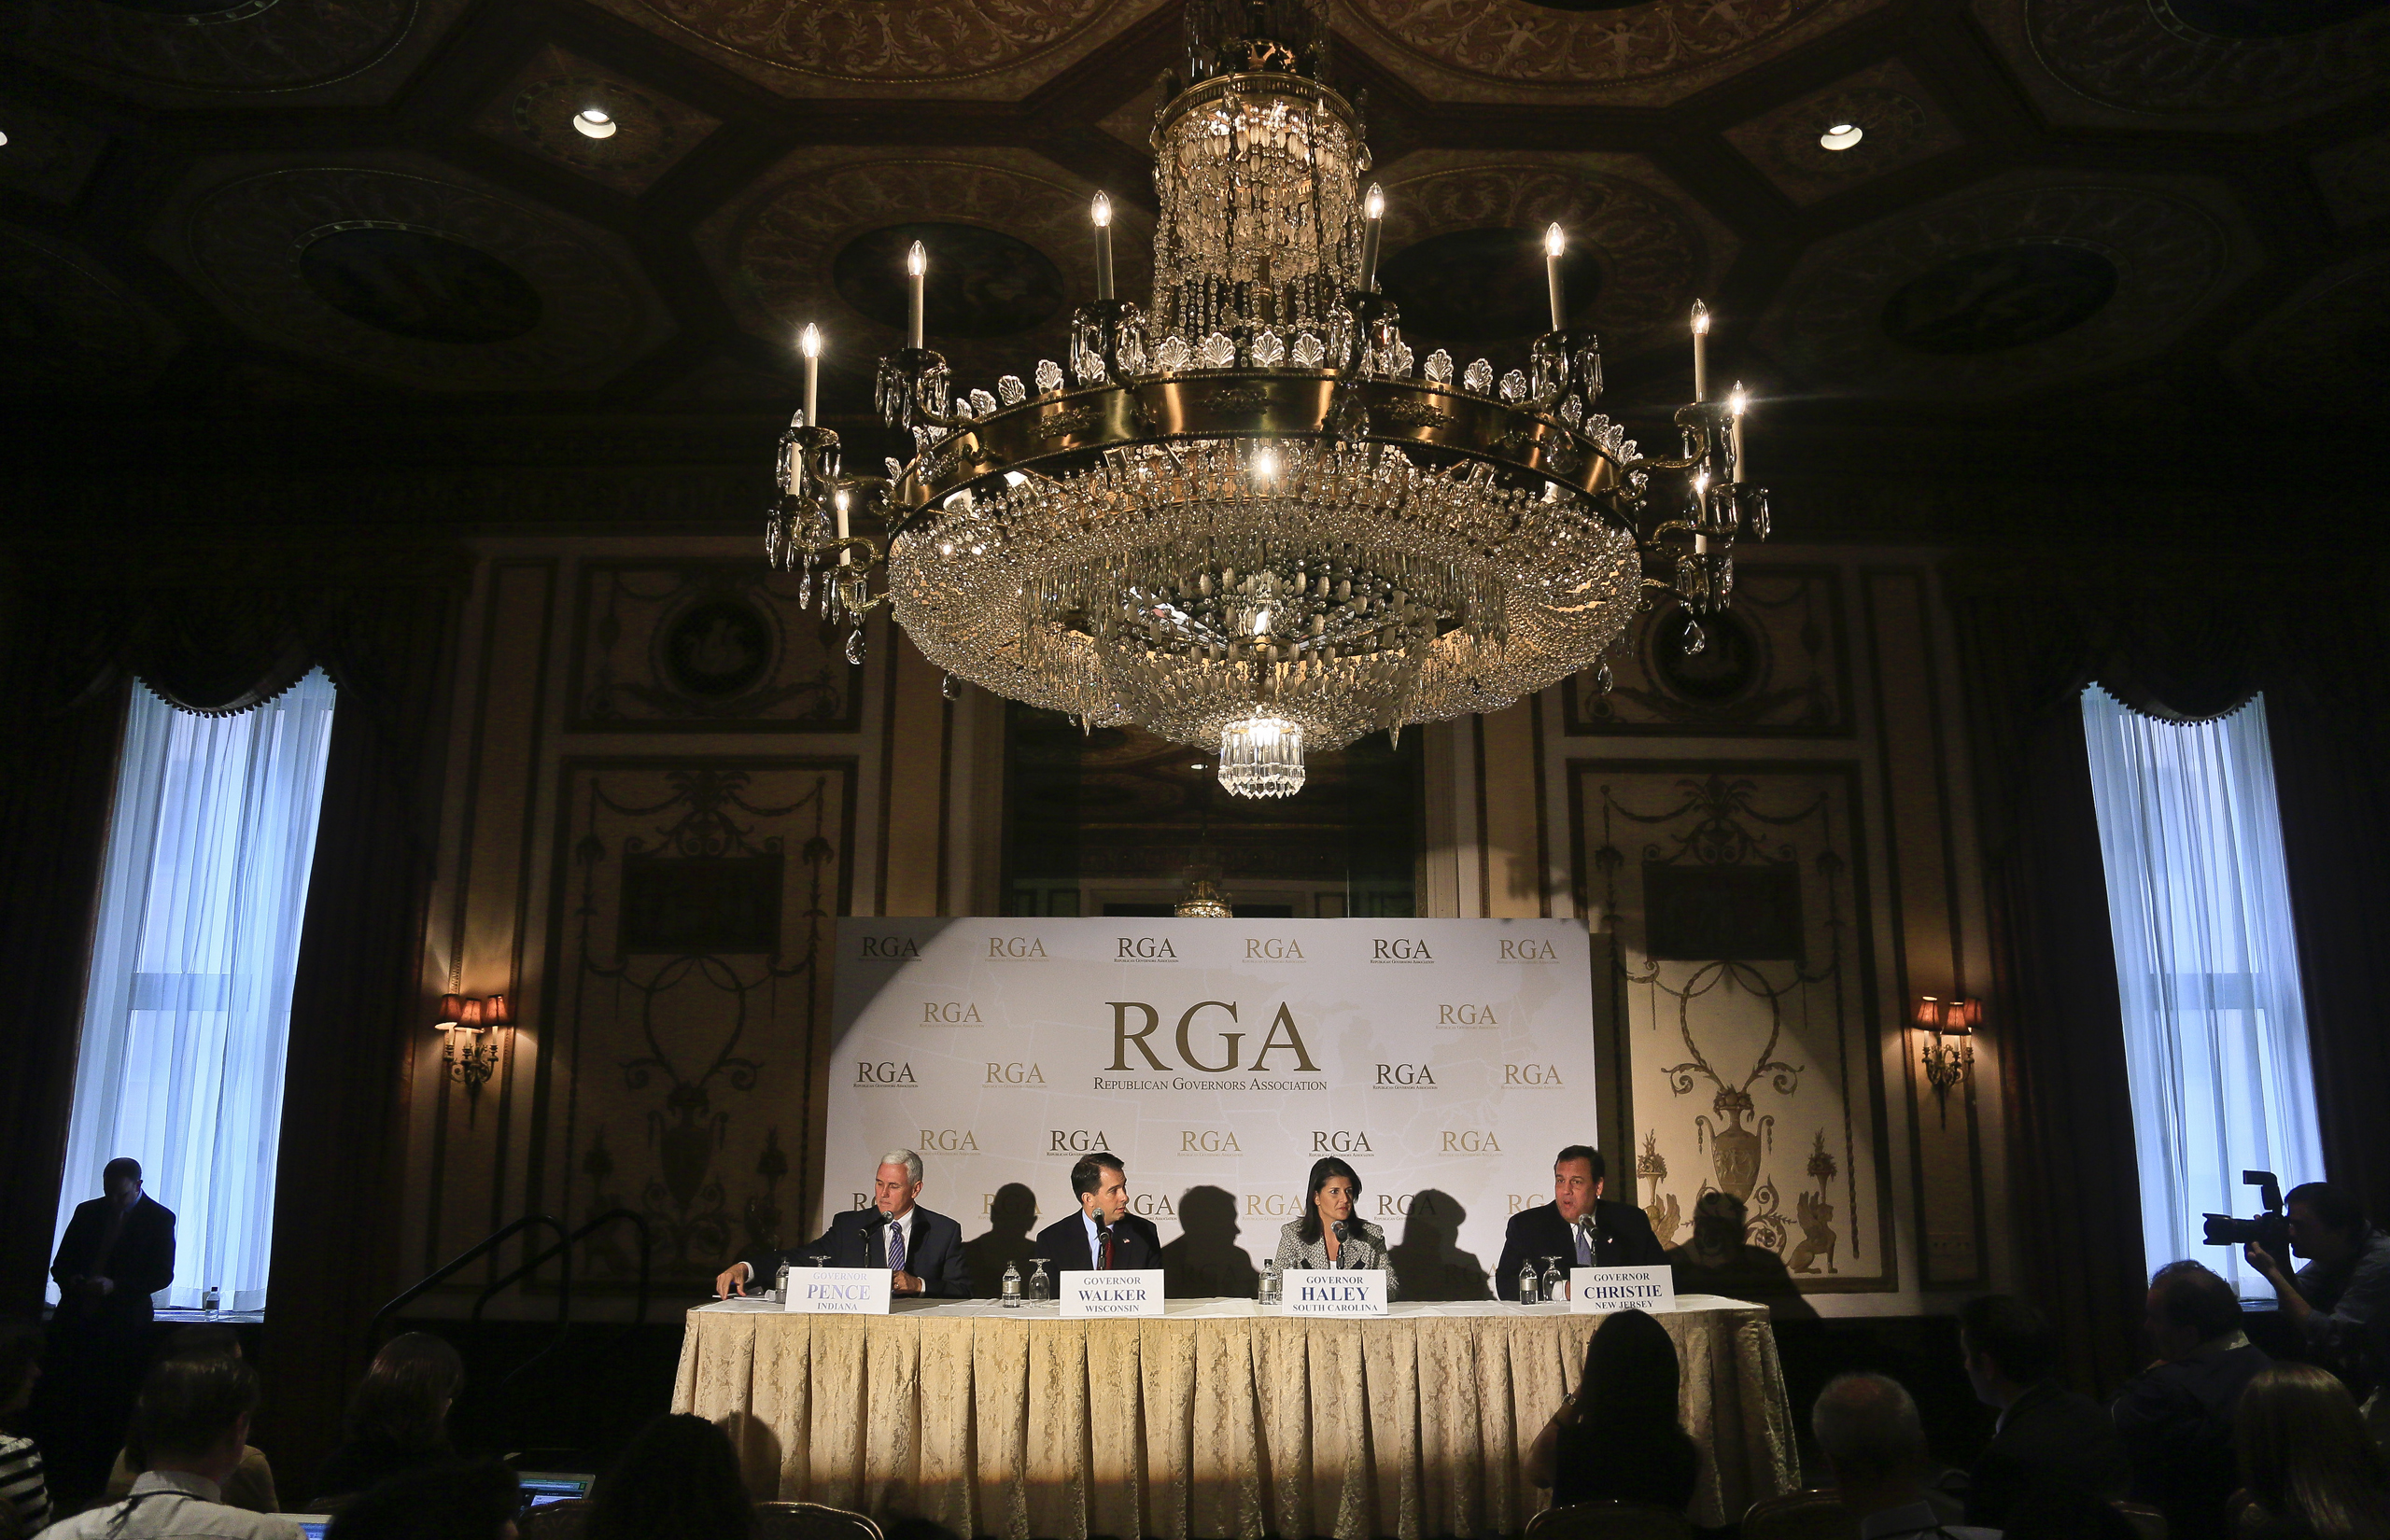 From Left, Ind. Gov. Mike Pence, Wisc. Gov. Scott Walker, S.C. Gov. Nikki R. Haley, and N.J. Gov. Chris Christie sit at the Waldorf Astoria as they prepare to hold a news conference, during the Republican Governors Association's quarterly meeting in New York City on May 21, 2014.